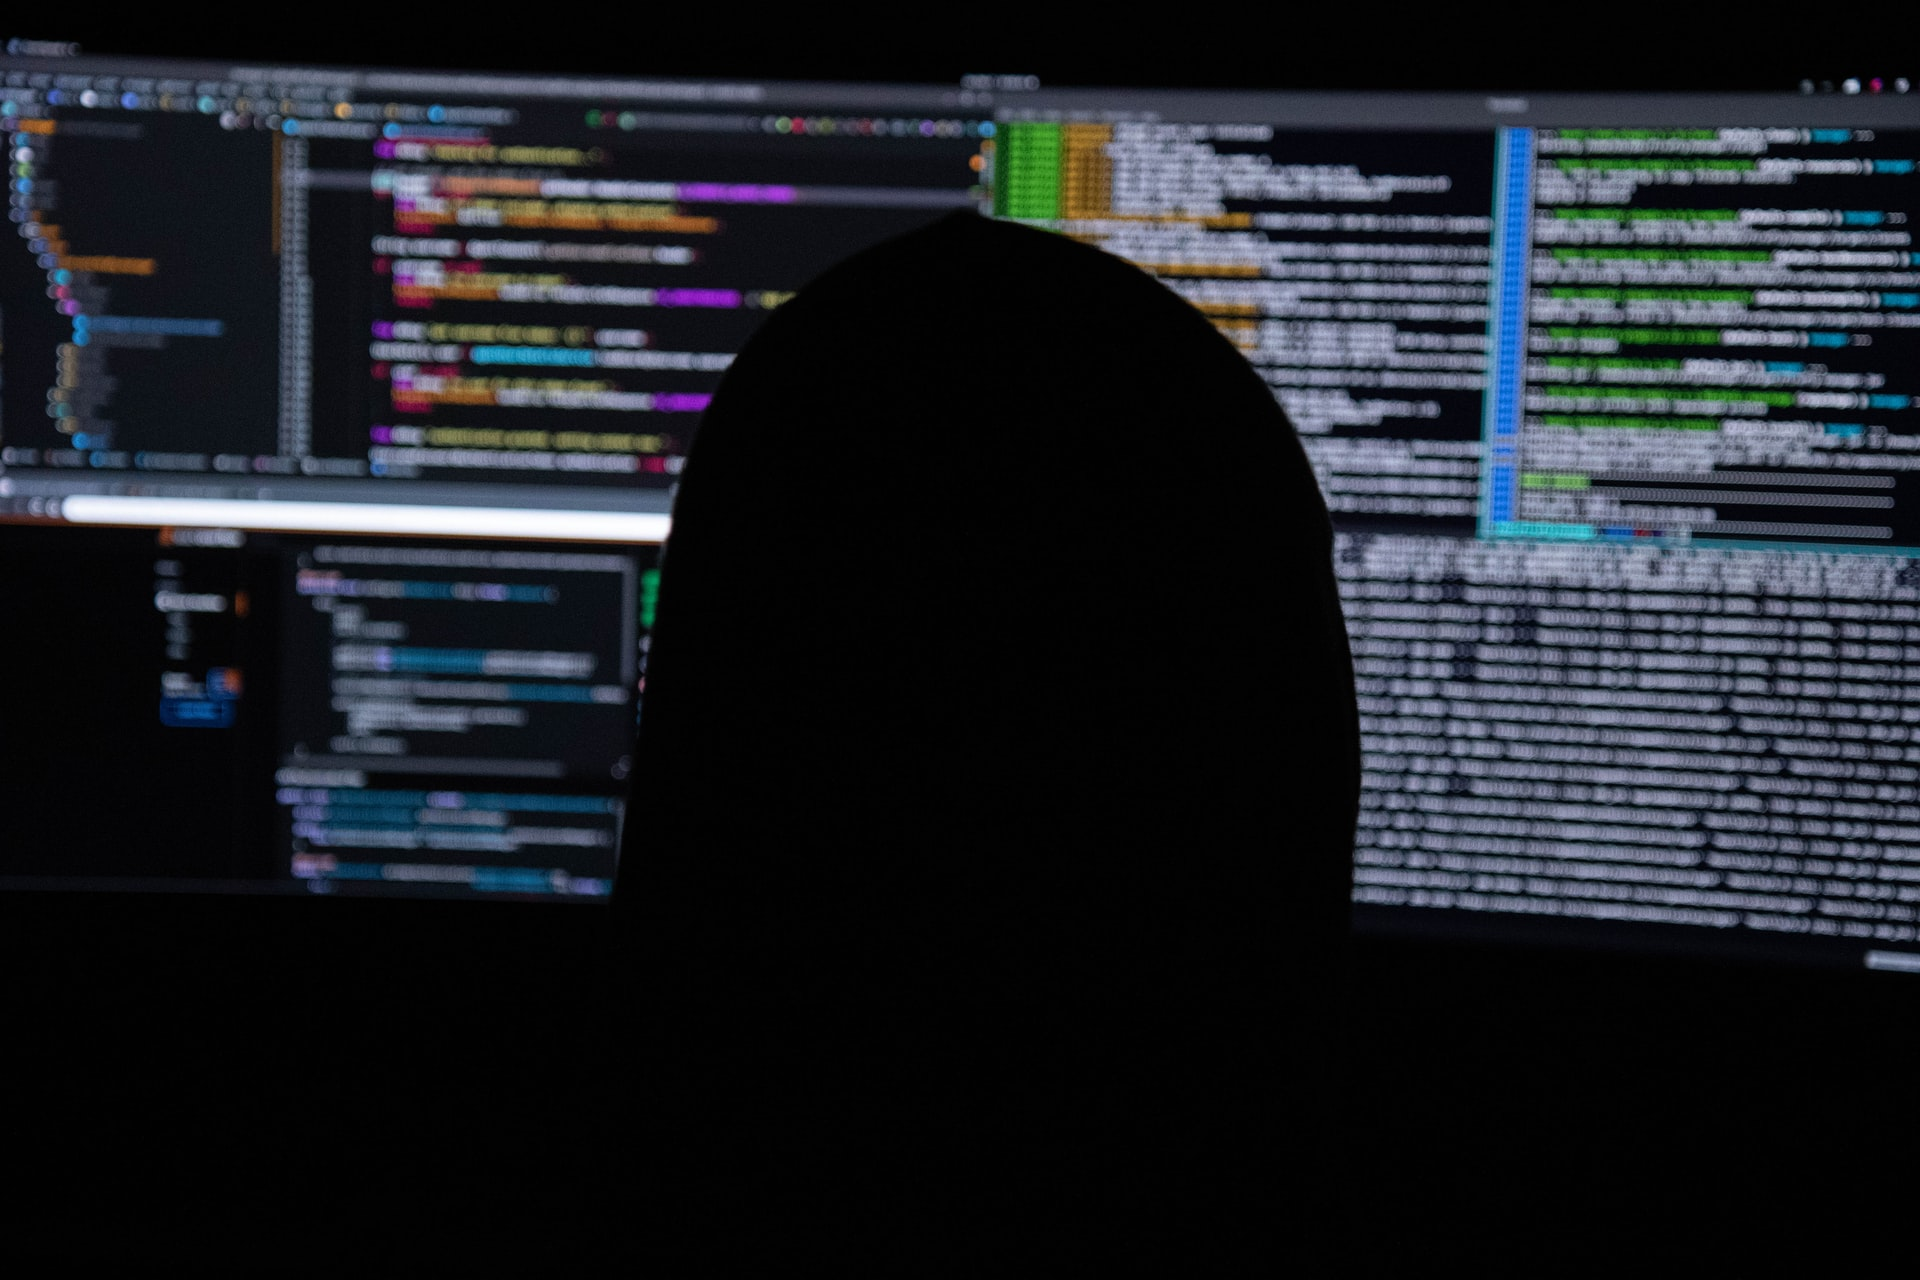 Russian state-backed hackers gained access to government networks